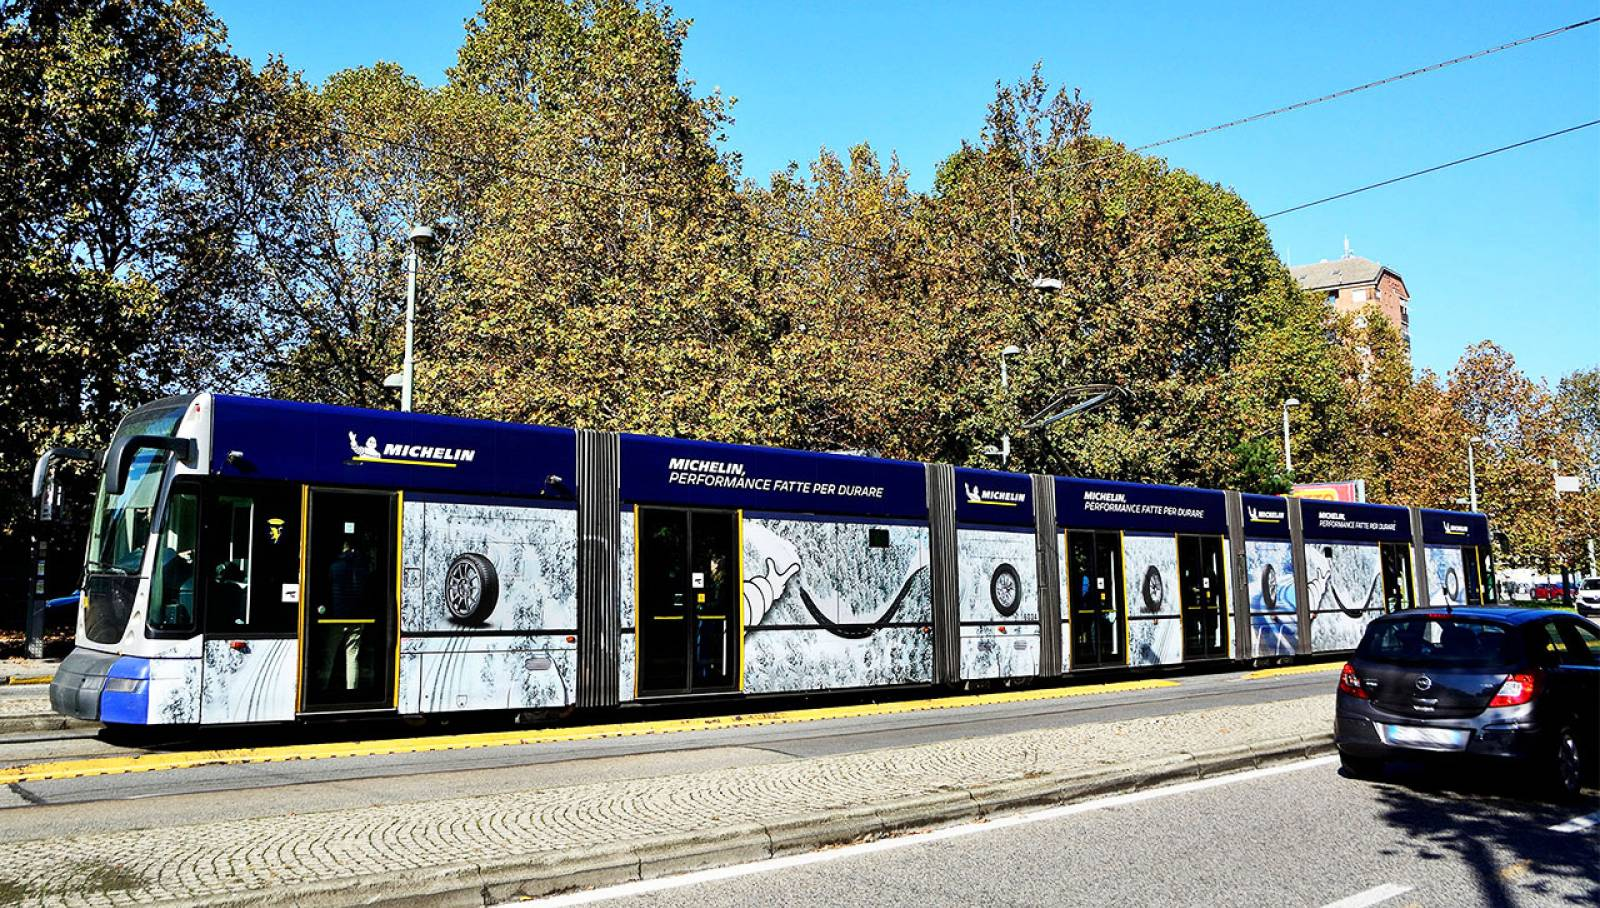 IGPDecaux Turin OOH Advertising on tram for Michelin